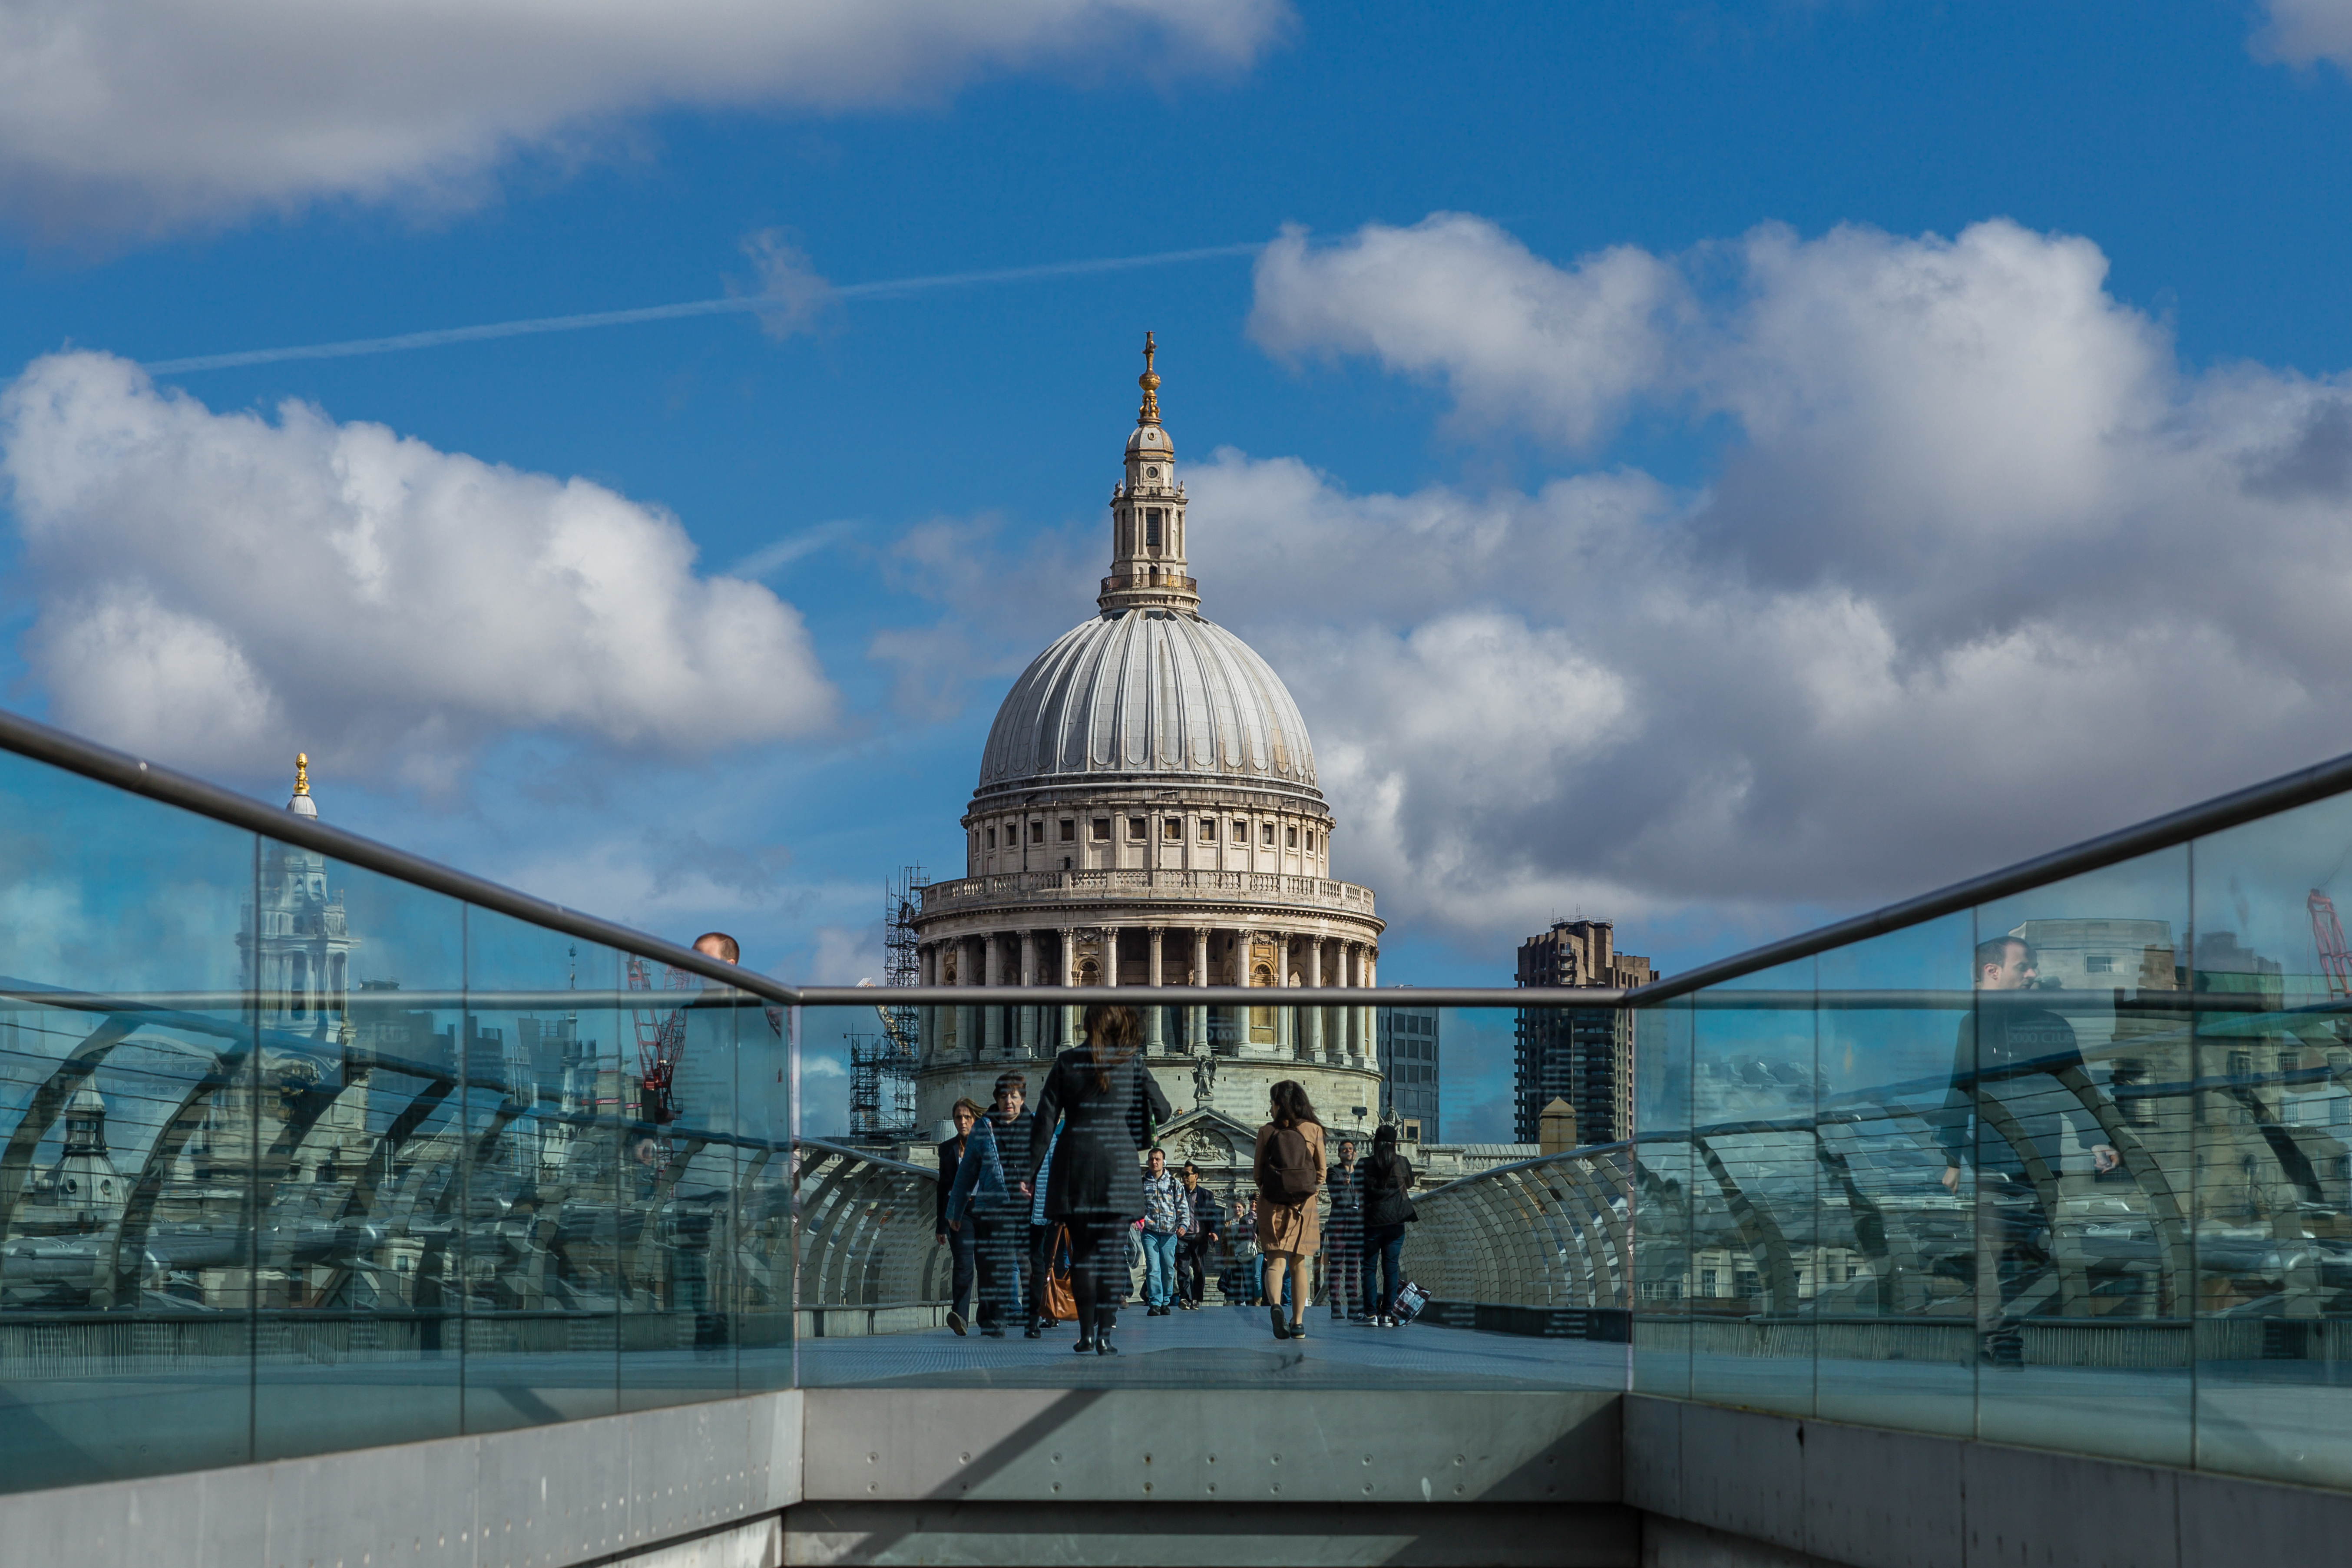 View of the dome of St. Paul's Cathedral from the Millennium Bridge